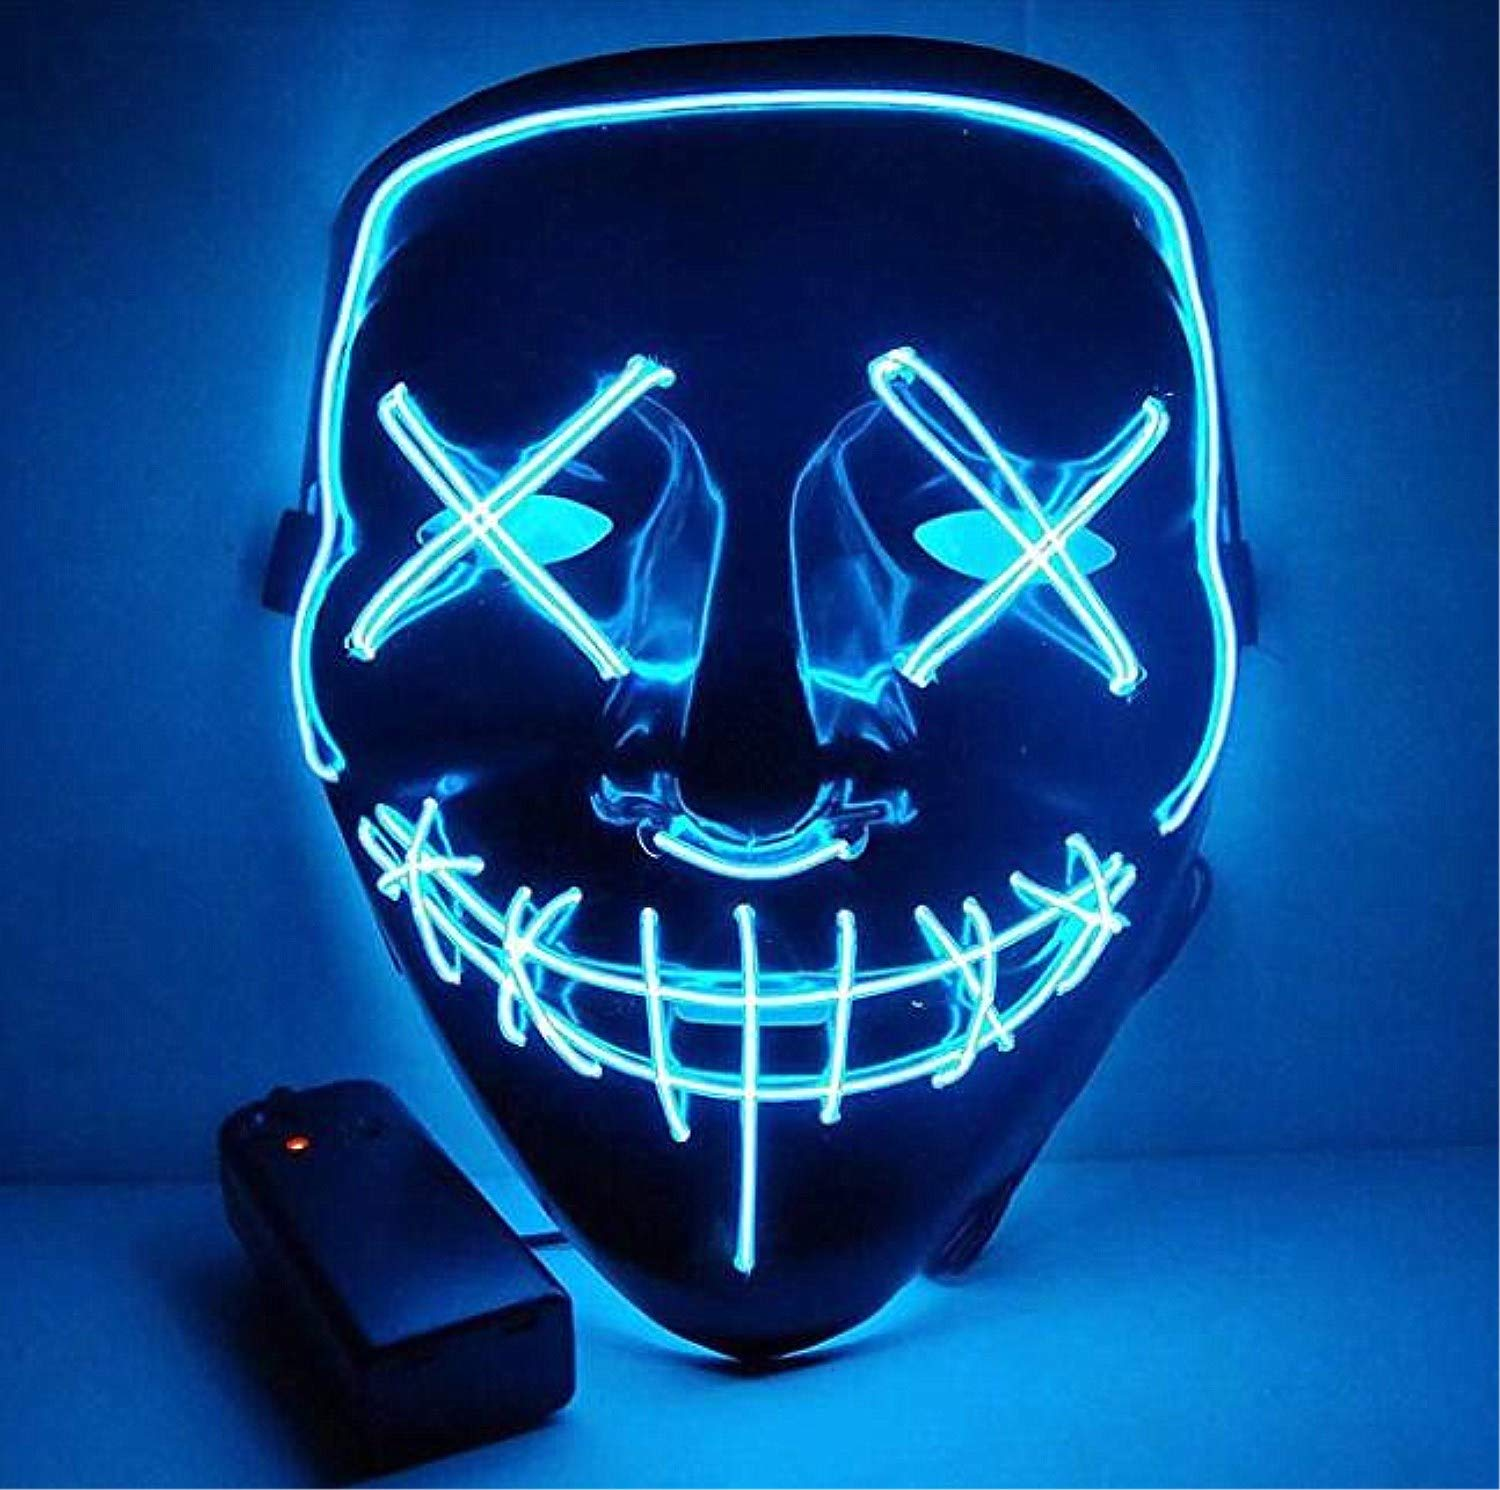 Moonideal Halloween Light Up Mask EL Wire Scary Mask for Halloween Festival Party Sound Induction Twinkling with Music Speed (Light Blue) by Moonideal